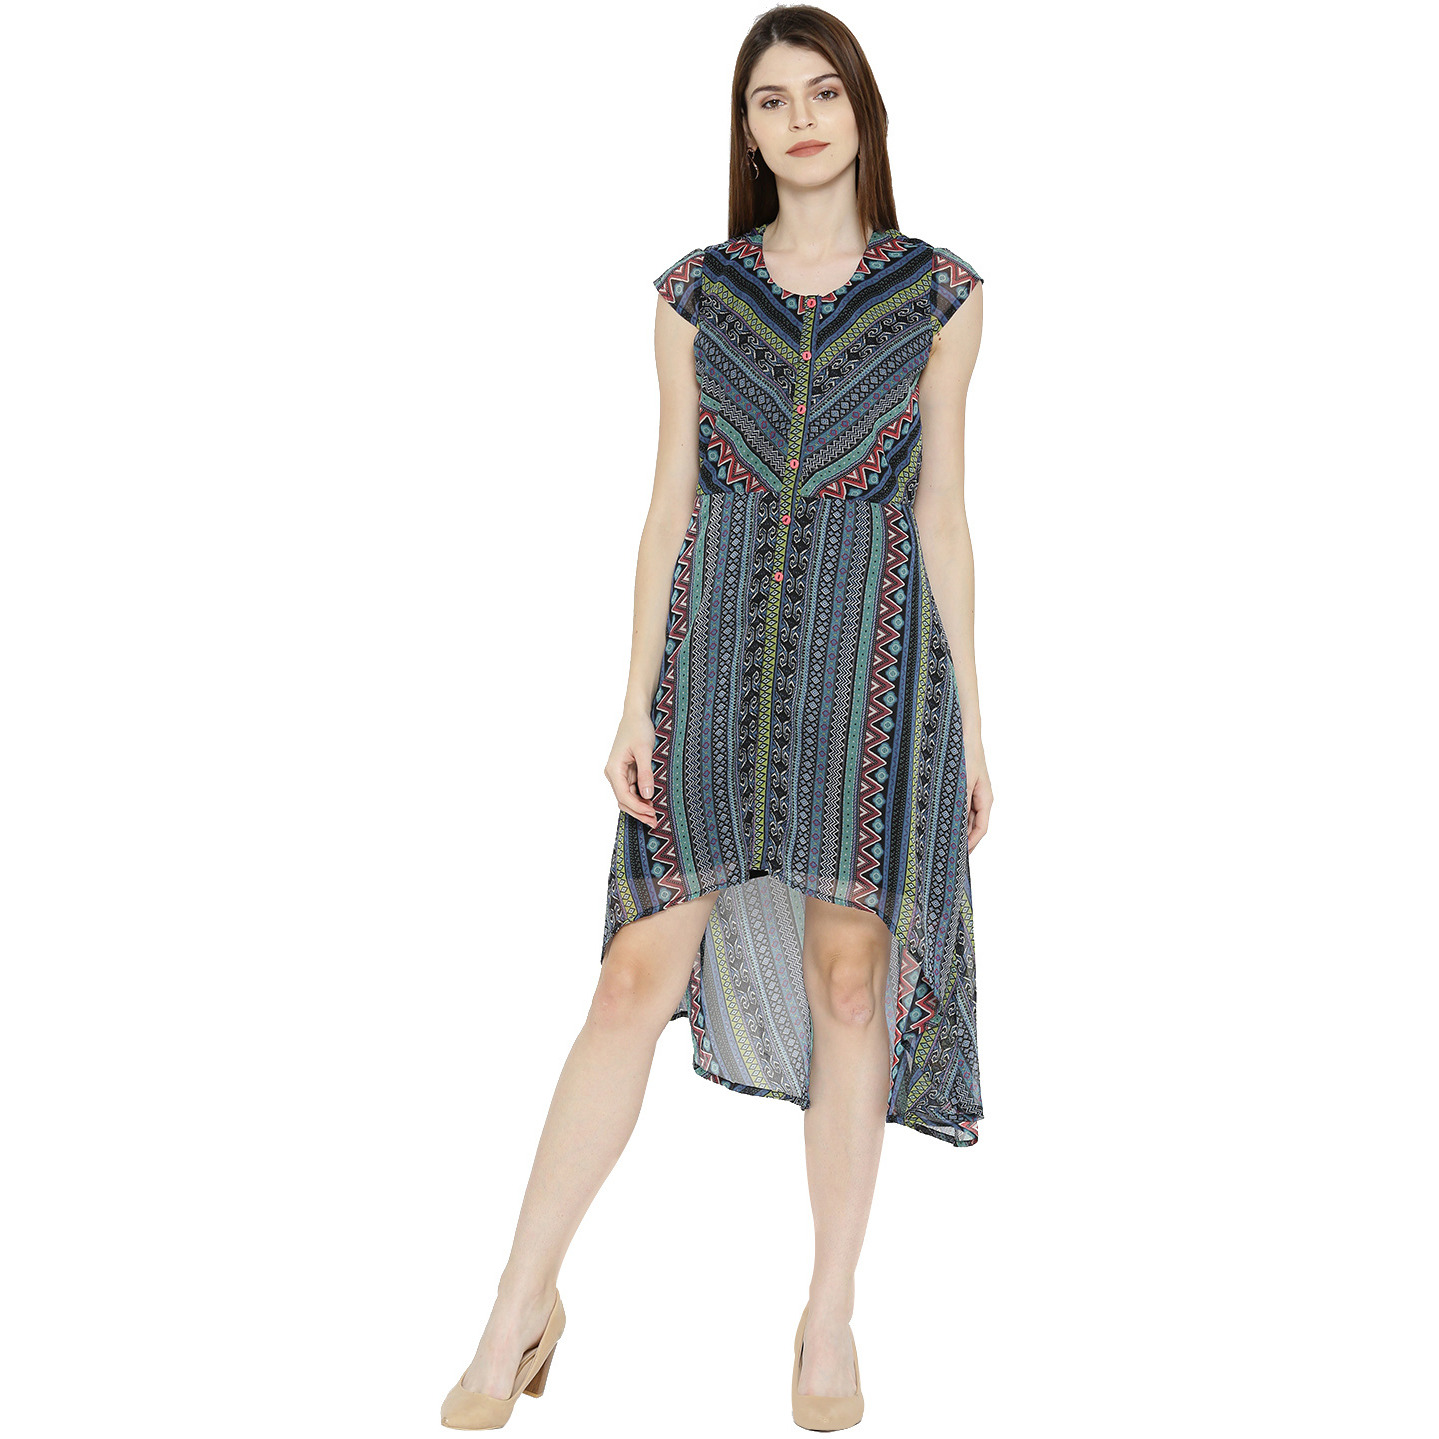 MultiPolyesterAsymetrical Hemilne dress For Womens